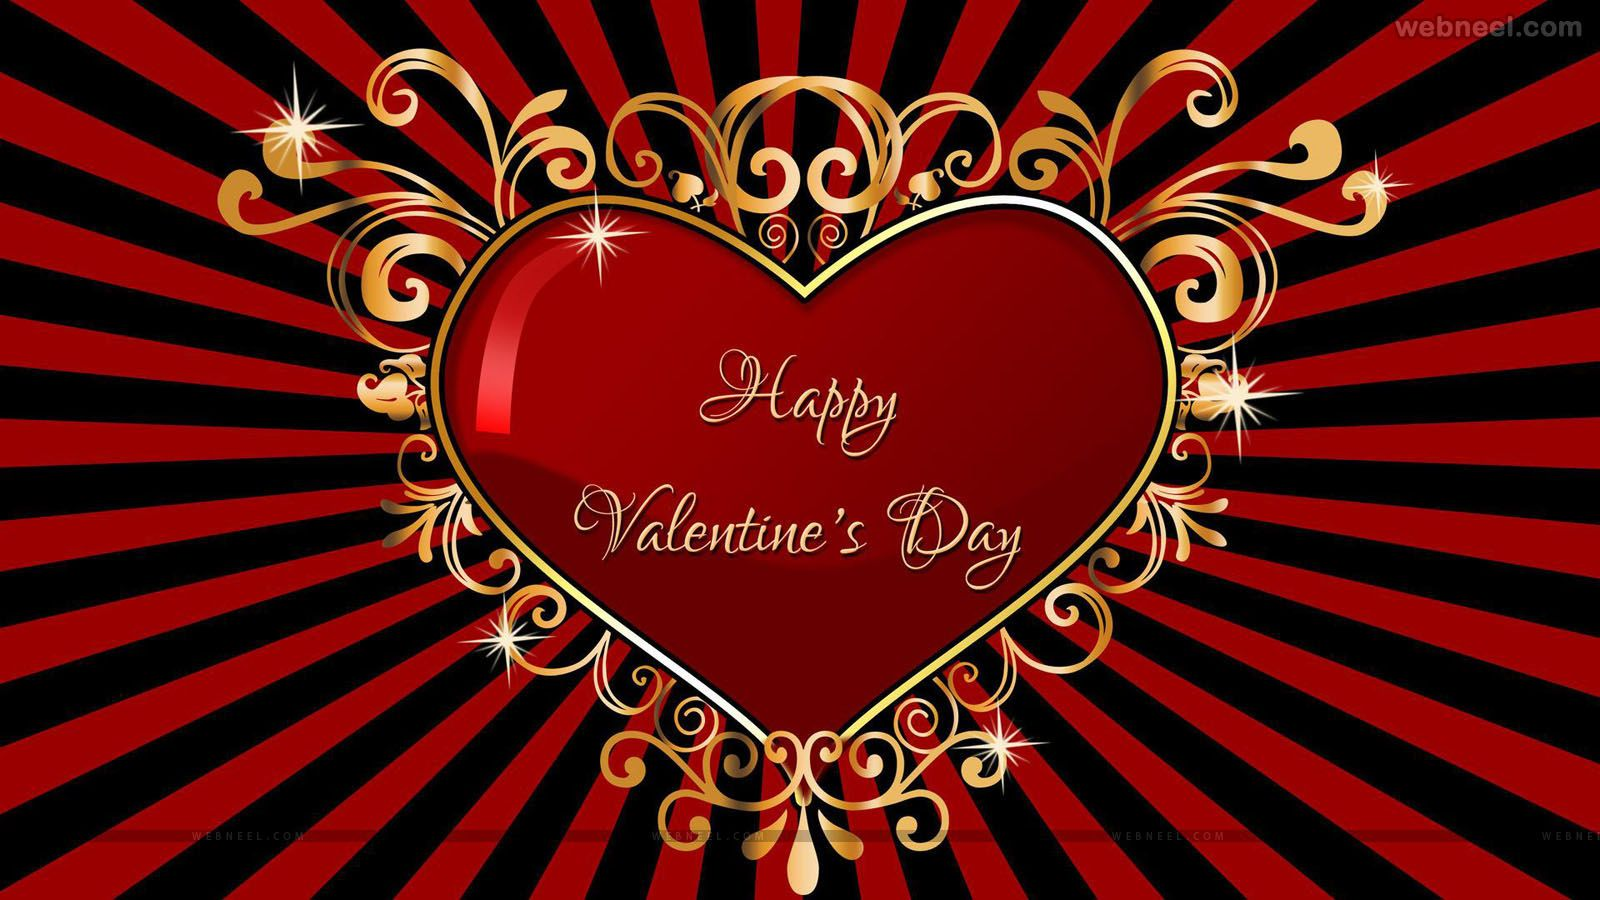 30 Beautiful Valentines Day Wallpapers For Your Desktop Valentines